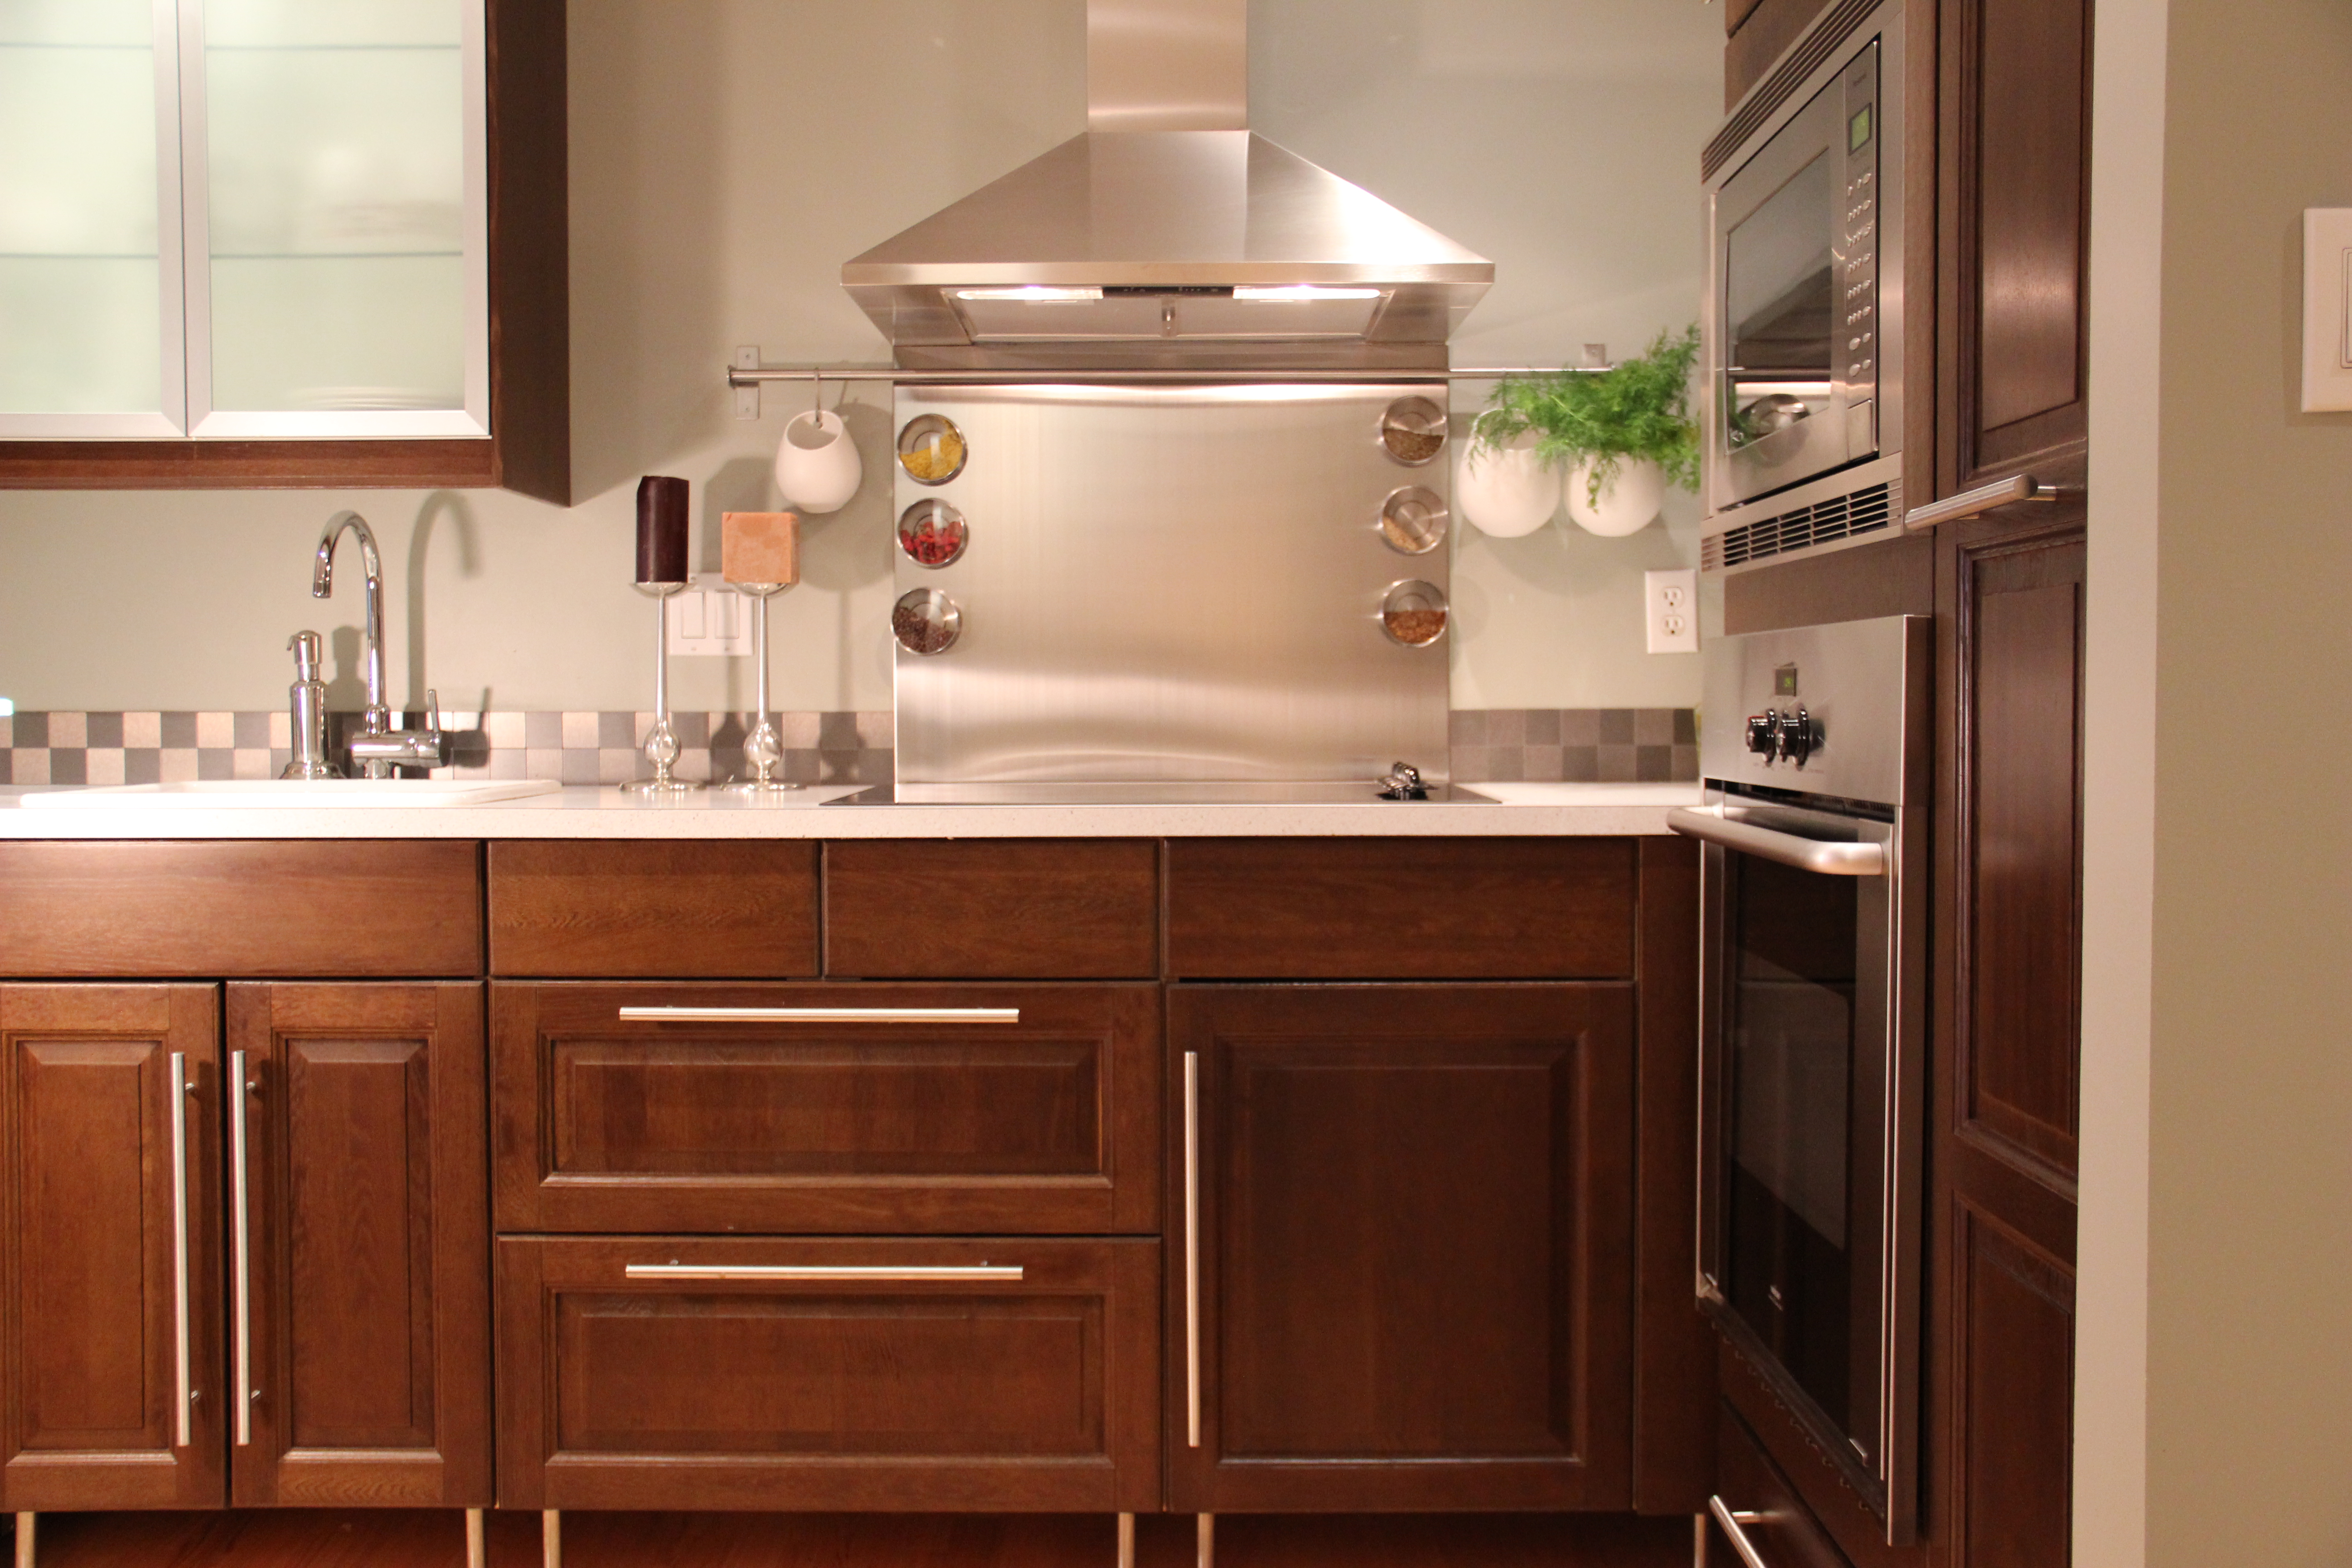 search creative range hood images